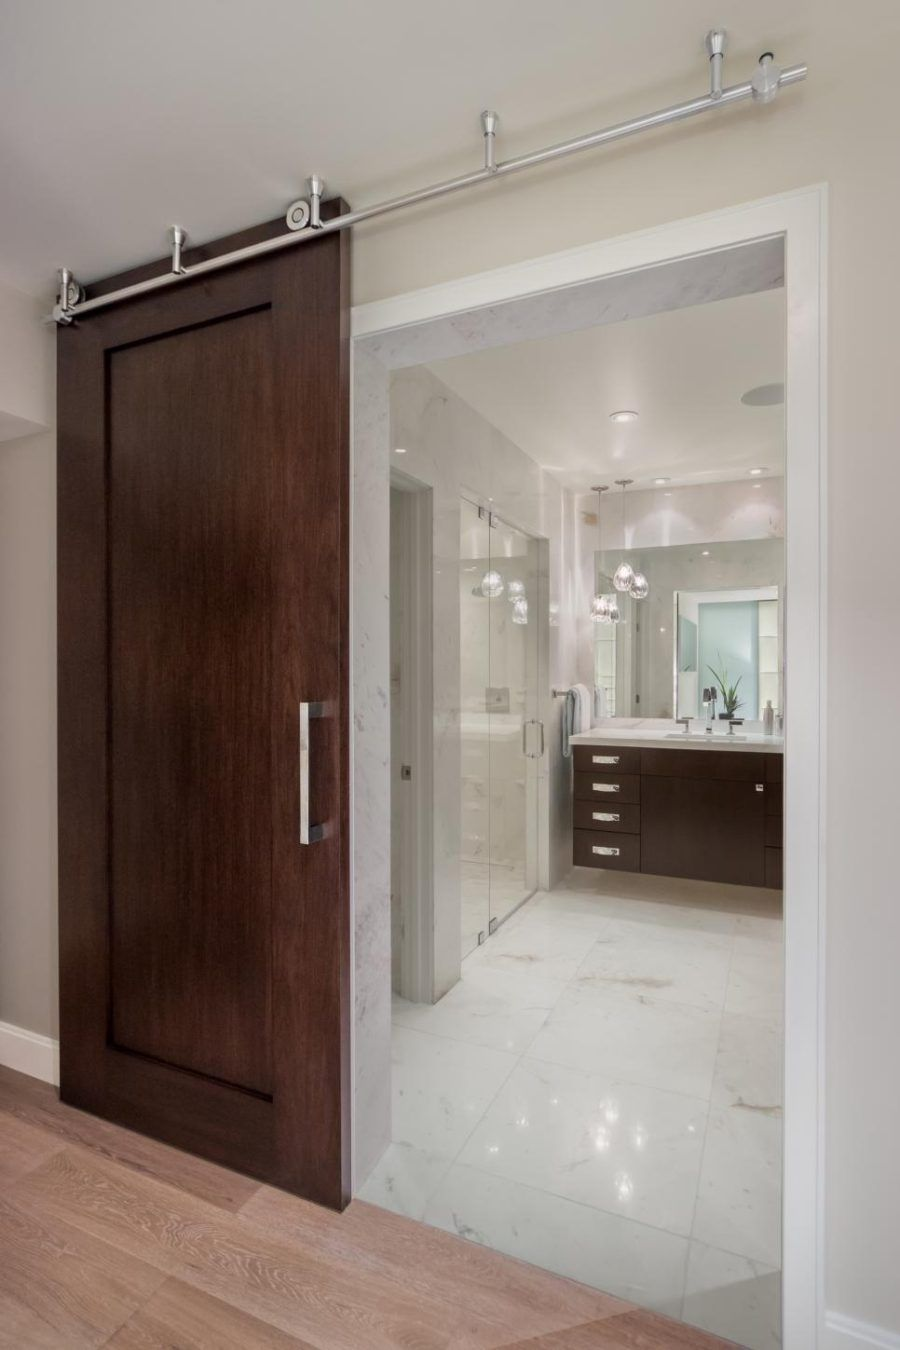 Bring Some Country Spirit To Your Home With Interior Barn Doors Barn Style Sliding Doors Sliding Bathroom Doors Barn Style Doors